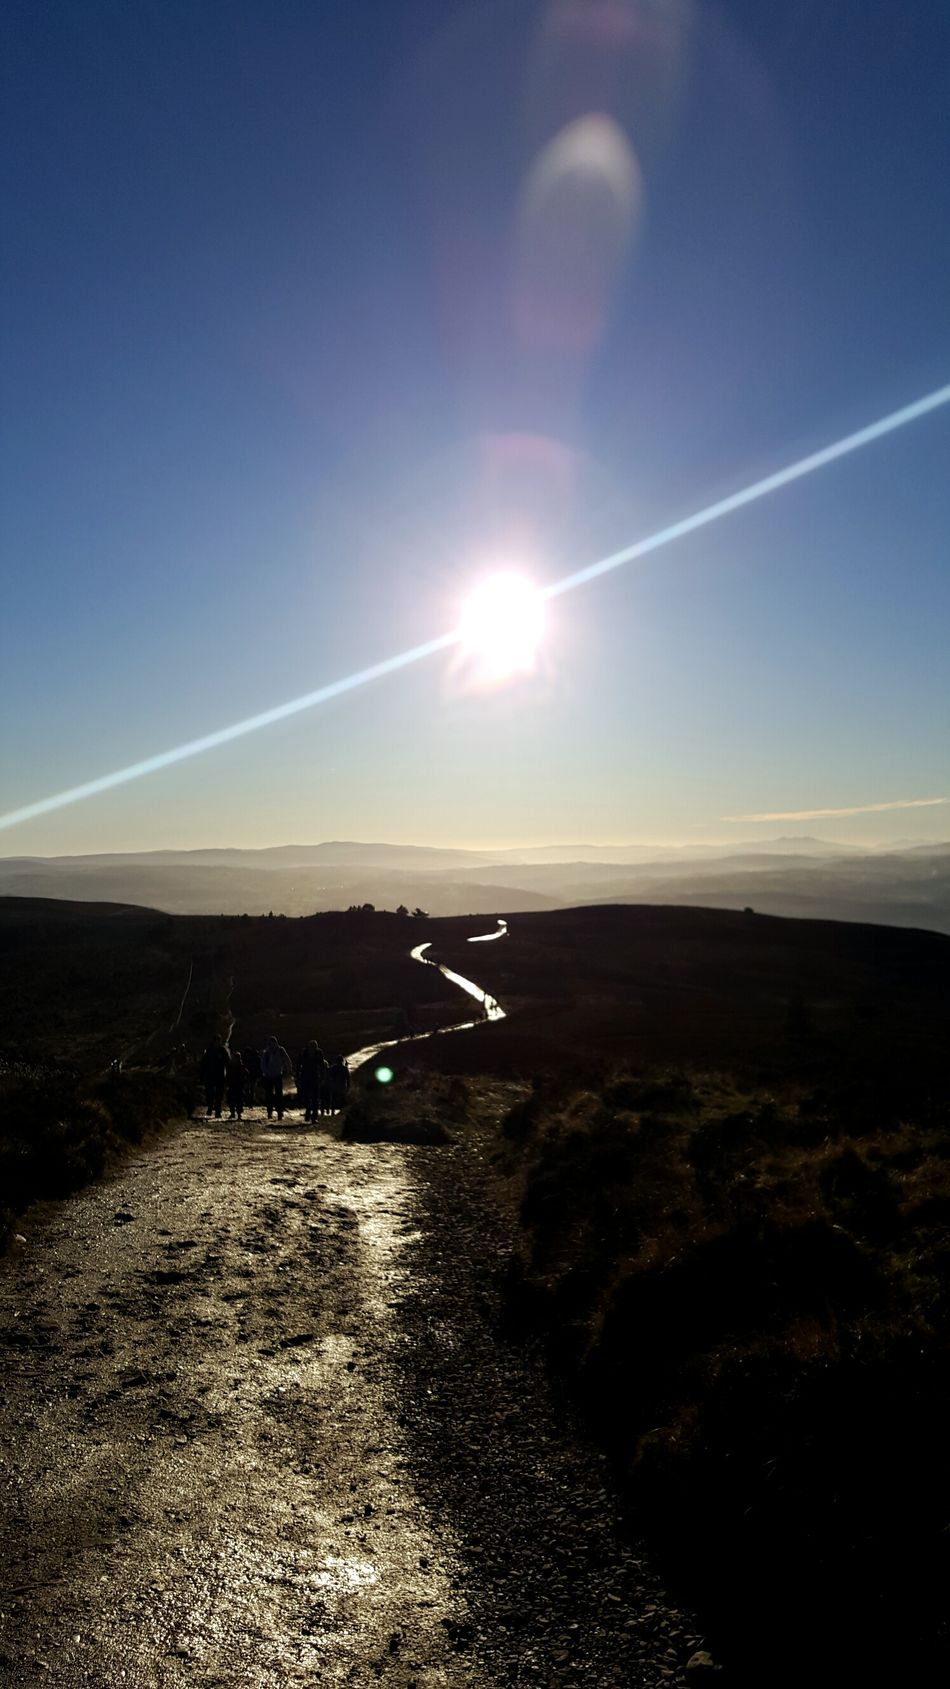 Outdoors Sky Sun Nature Landscape No People Day Backgrounds Tranquility Sun Flare Light Flares Heather Moors Moorland Wales Moel Famau Scenics Beauty In Nature Sunlight Sunset Nature Beams Of Light Shadows & Lights Shadow